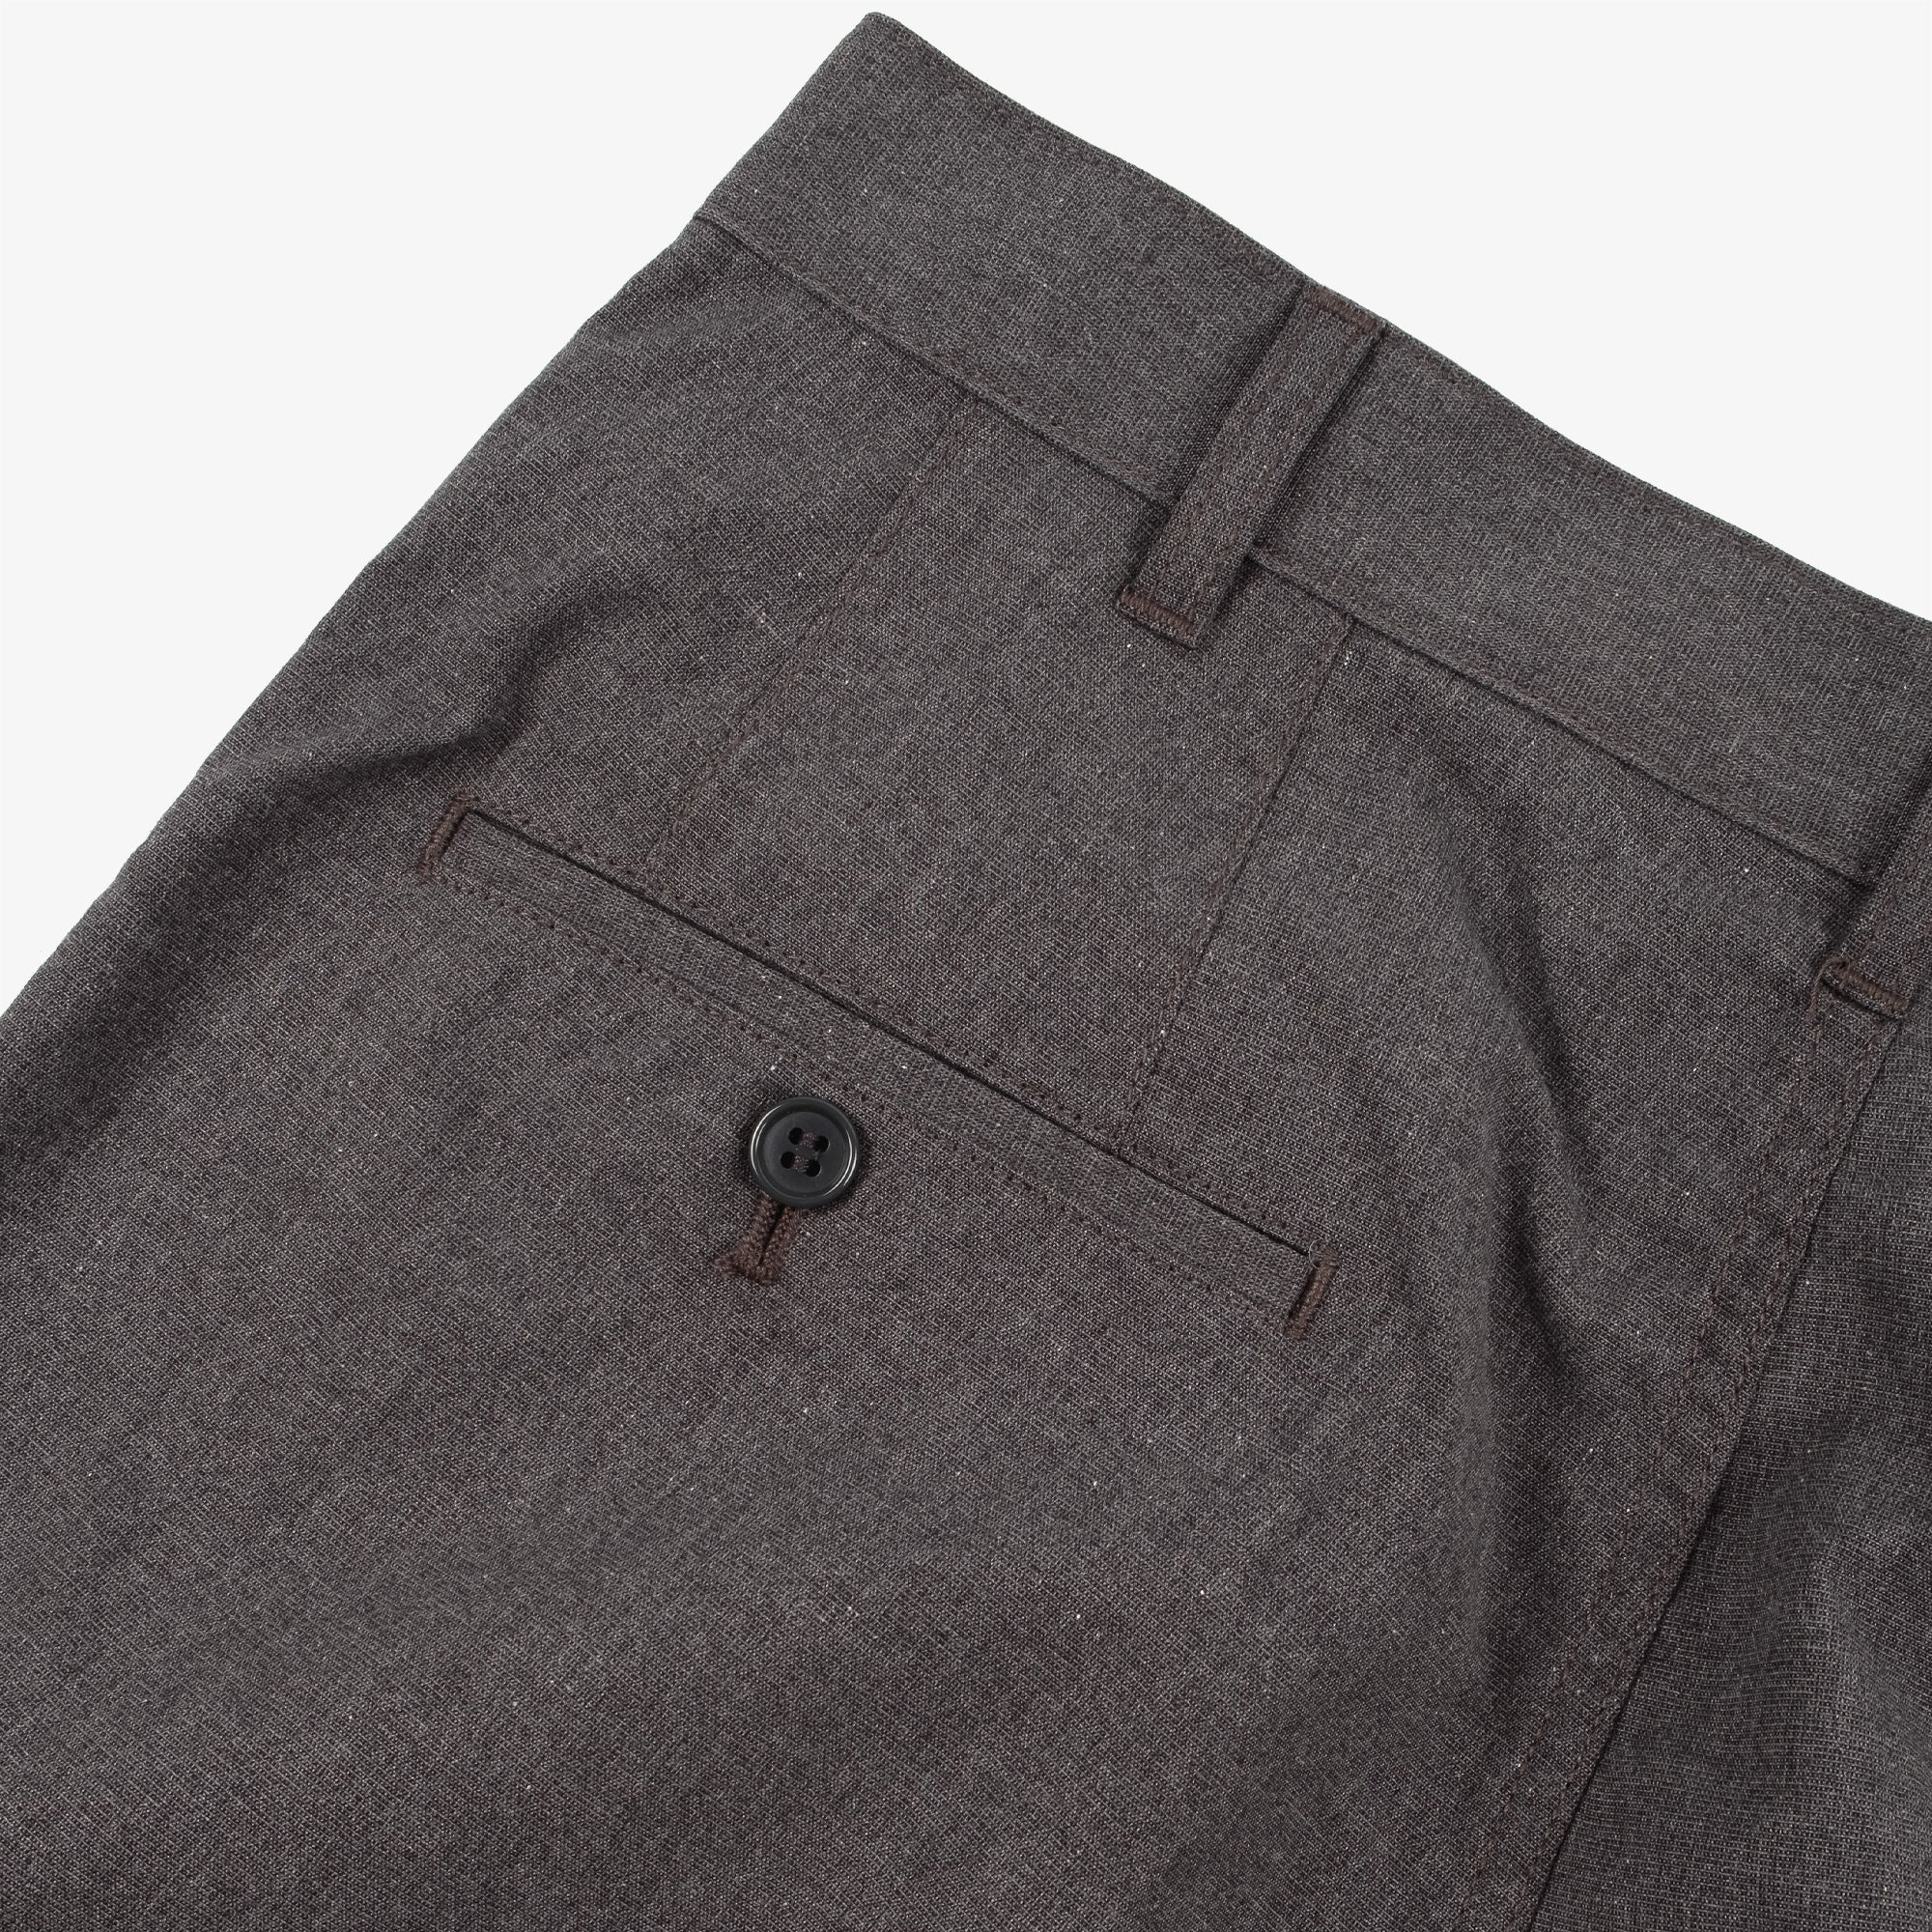 Comme des Garçons - Homme Two Tuck Wide Pleat Trousers - Grey 6